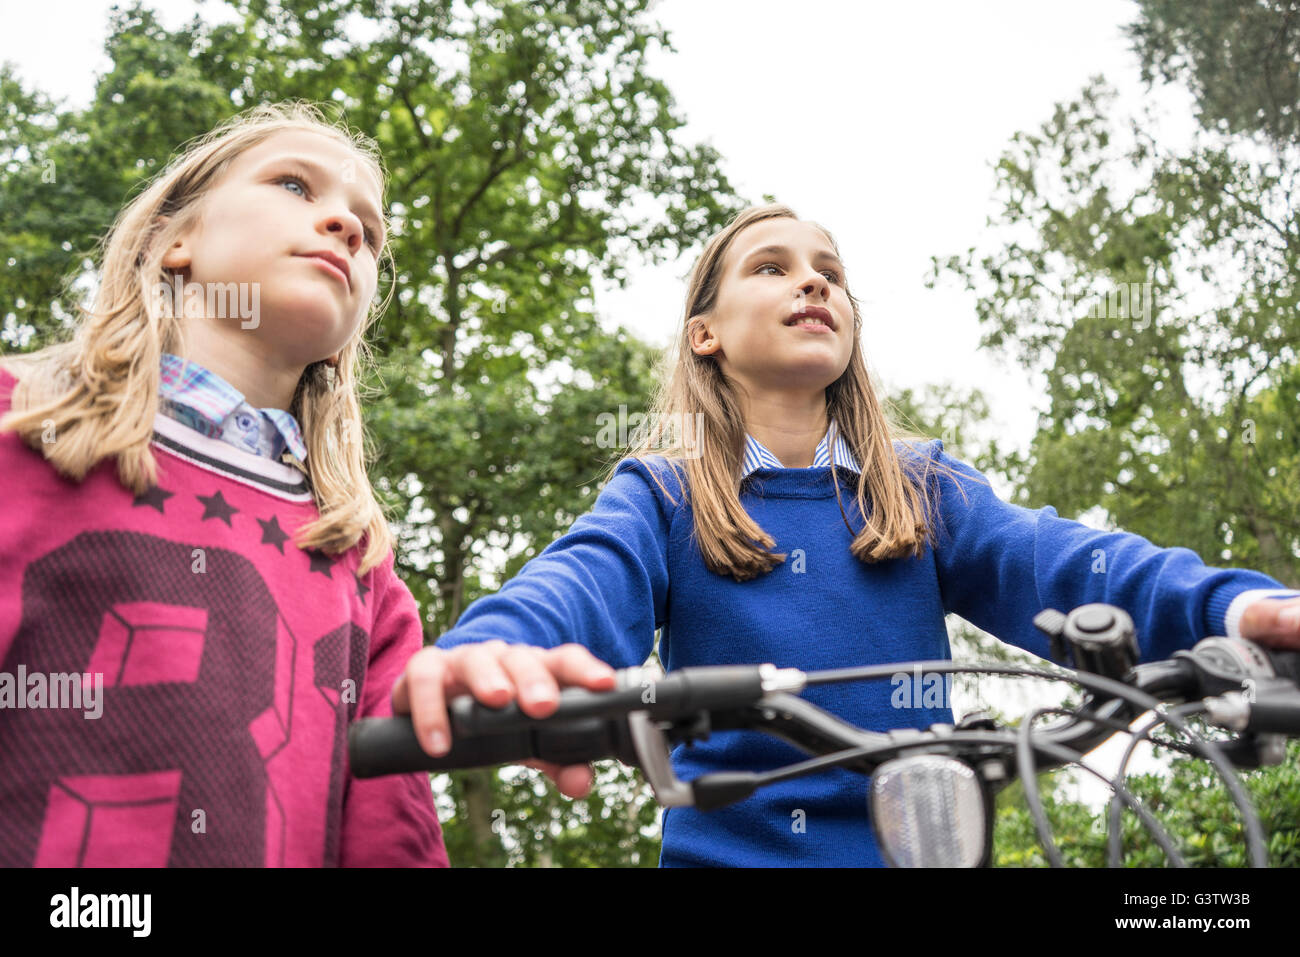 Looking up at two girls playing on a bicycle outside. Stock Photo